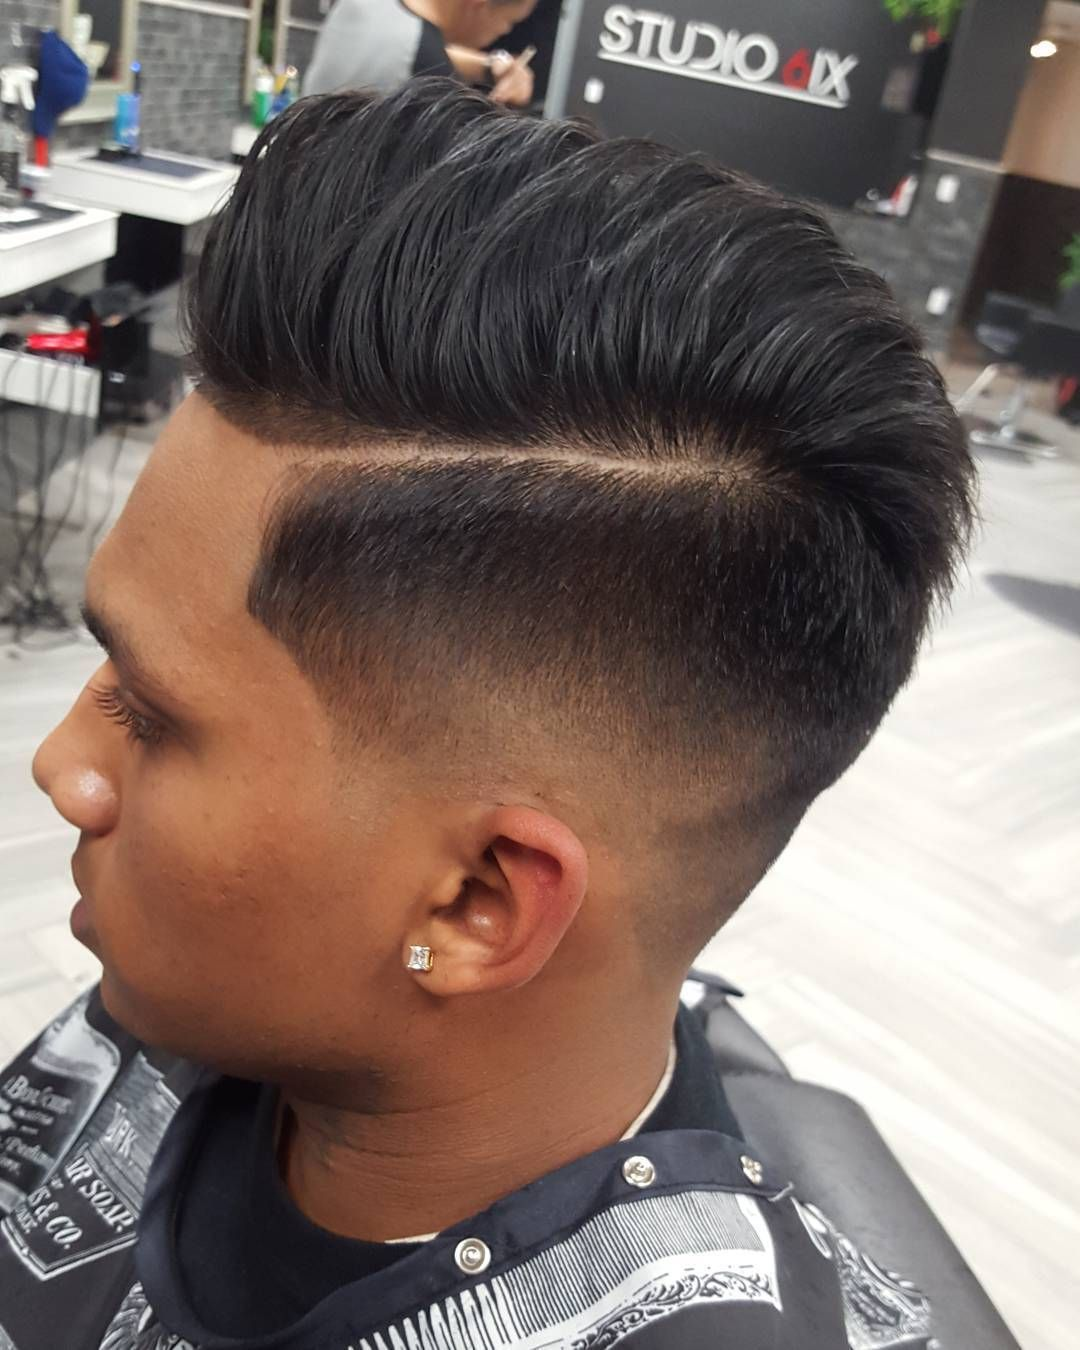 Hairstyles with quiff - 27 Joyful Modern Quiff Haircuts Hairstyles For Men S